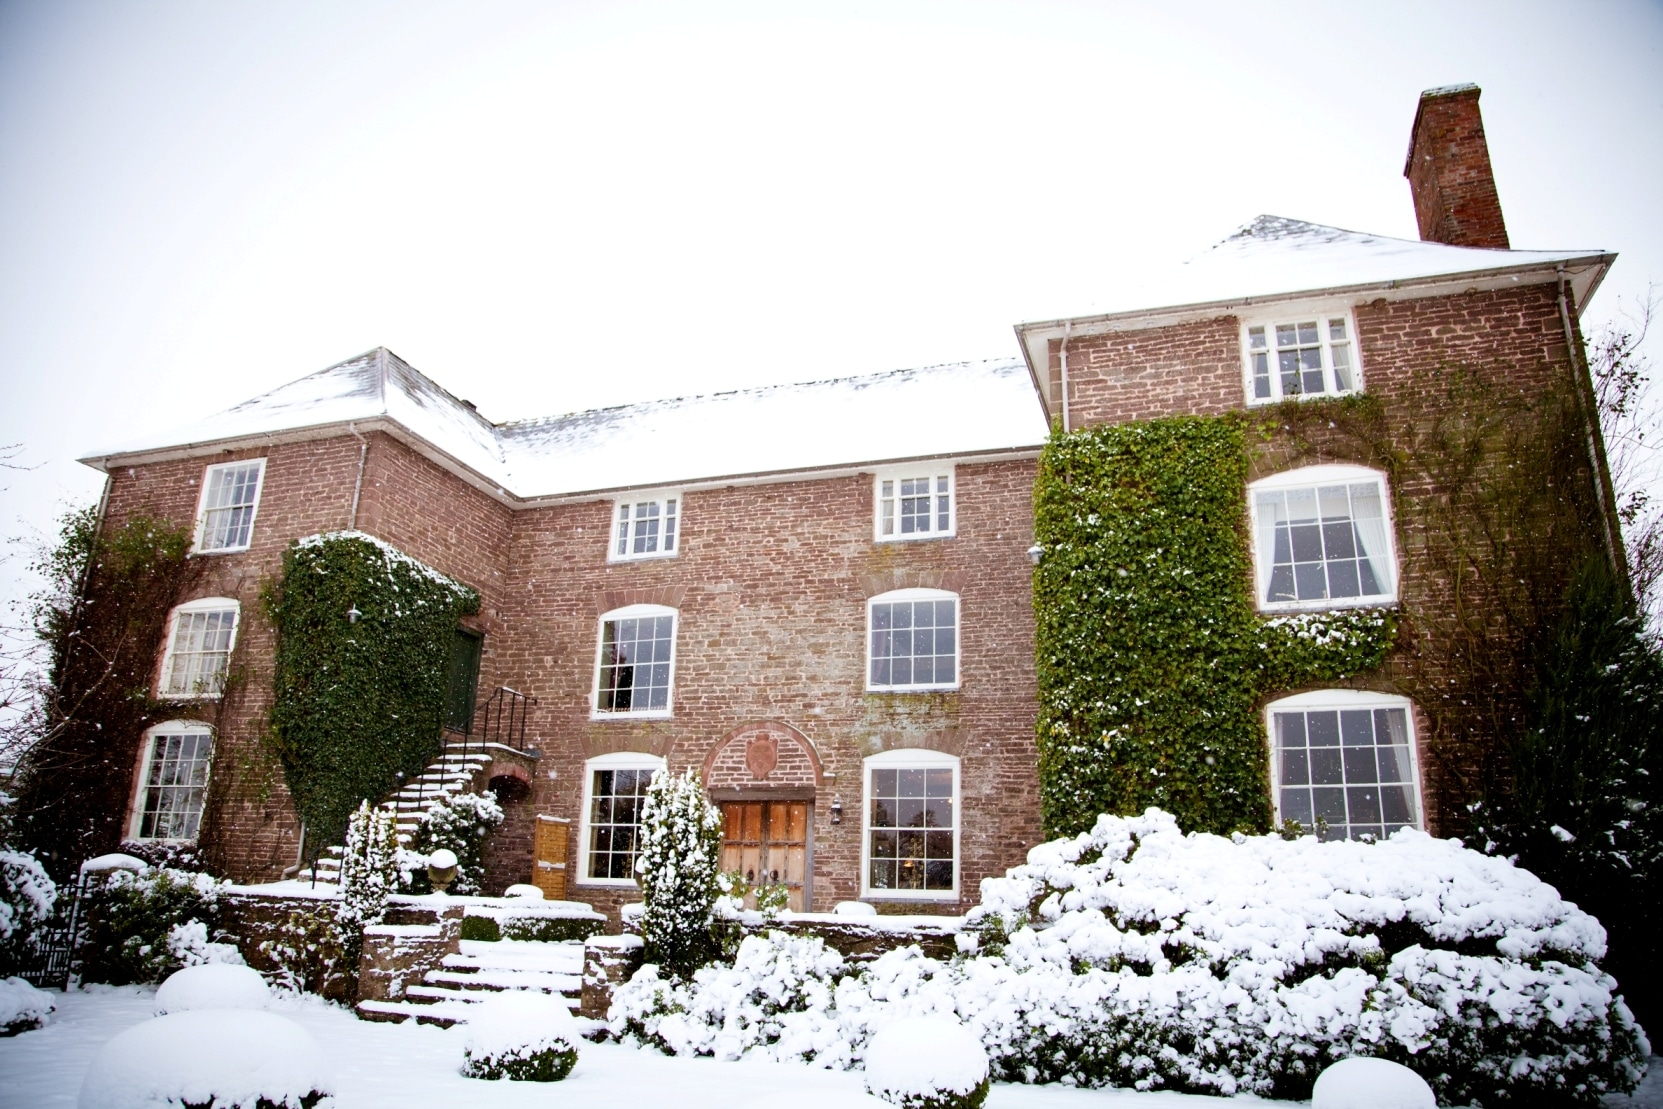 31 Winter Weddings at Dewsall Court